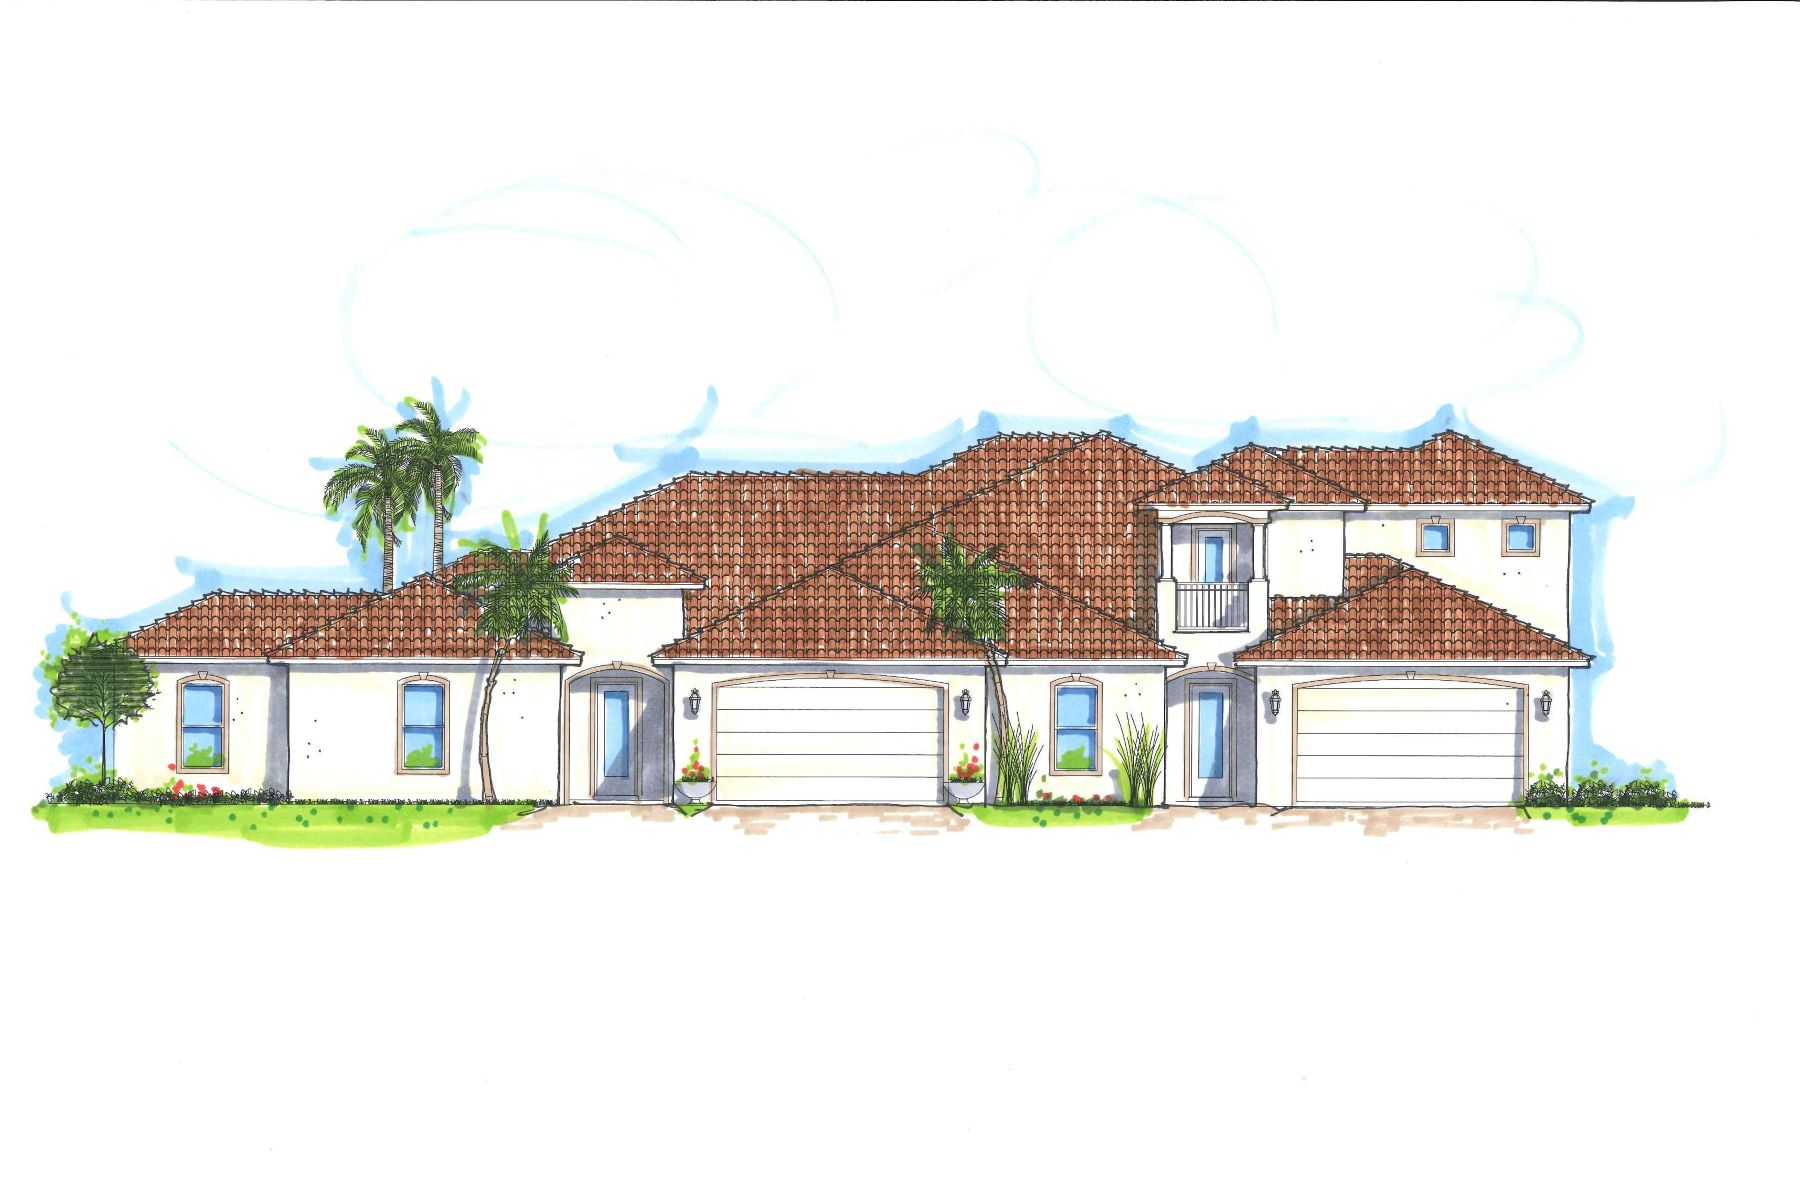 Duplex Homes for Sale at Cranes Point at Aquarina 841 Aquarina Blvd. Melbourne Beach, Florida 32951 United States